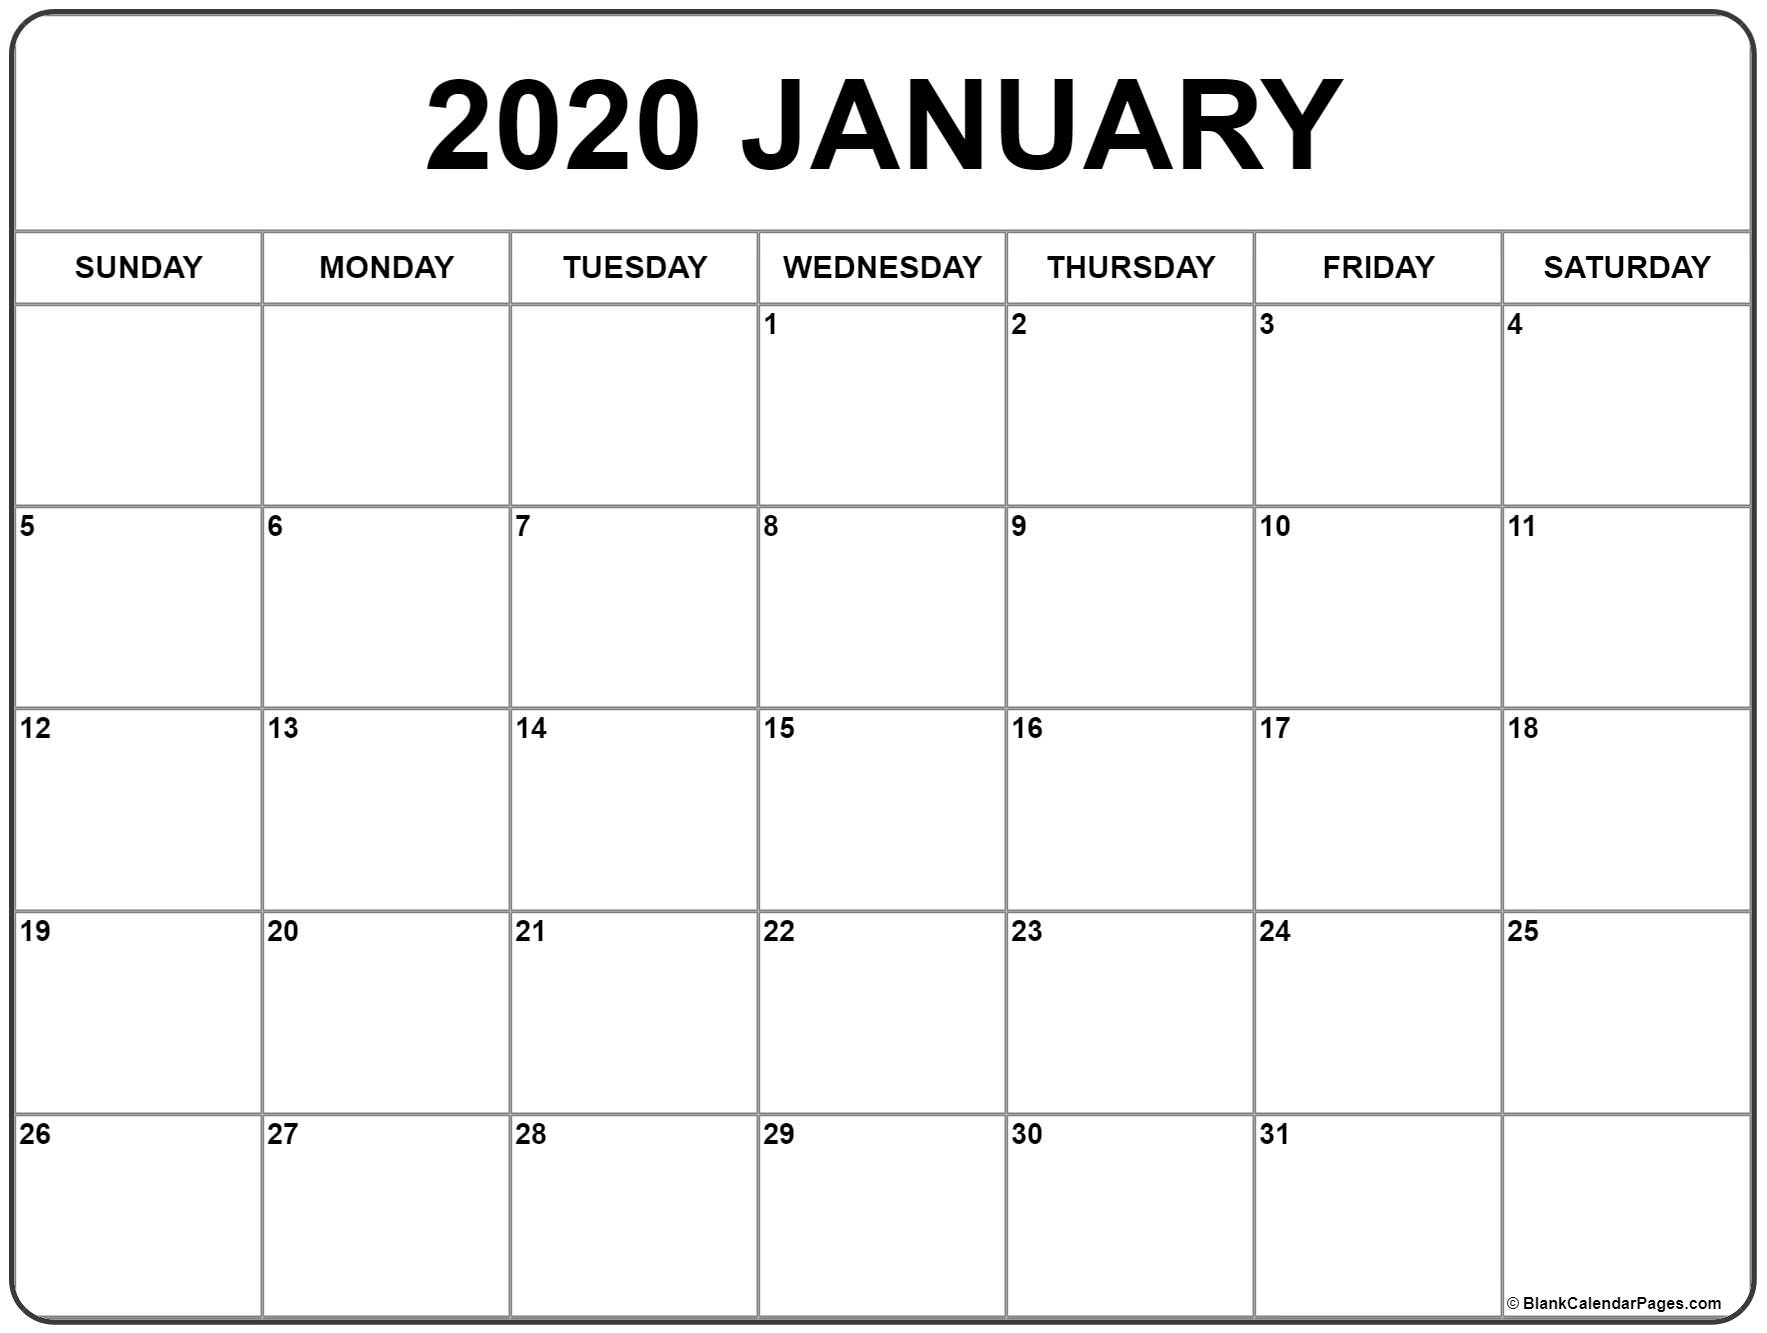 January 2020 Calendar | Free Printable Monthly Calendars throughout Print Free 2020 Calendar Without Downloading Weekly Writing